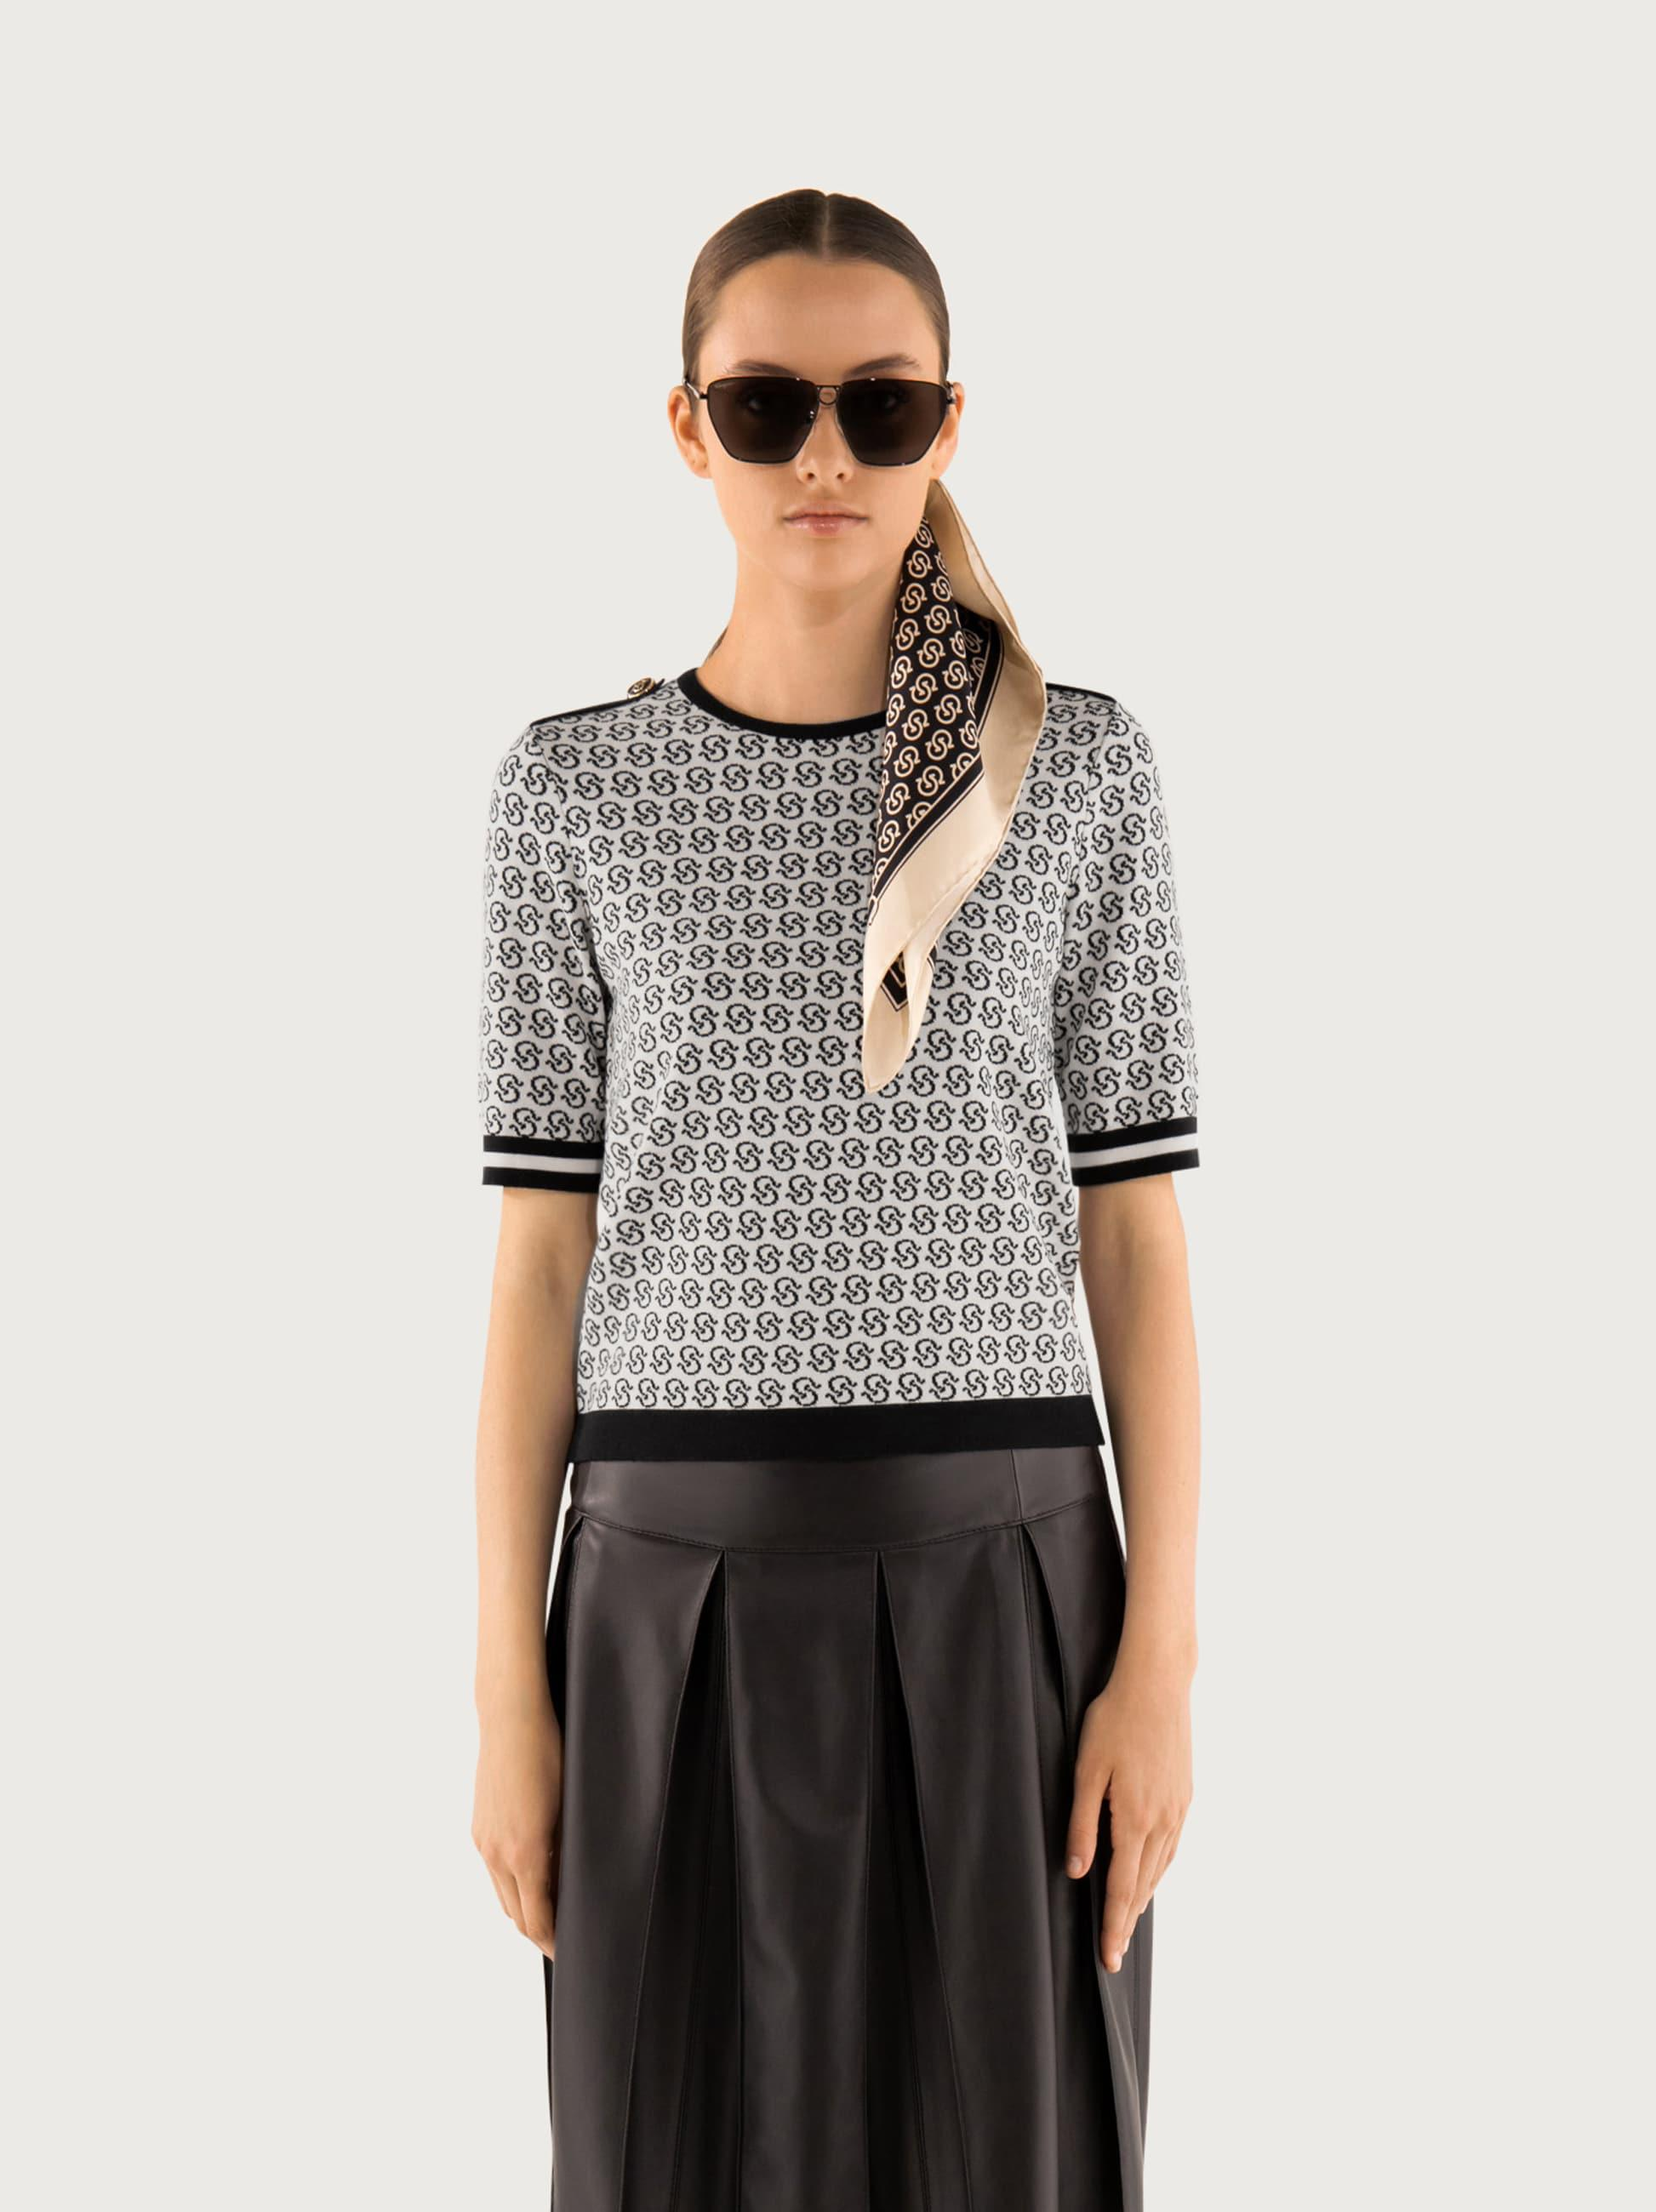 GANCIO S SHORT SLEEVED KNITTED TOP